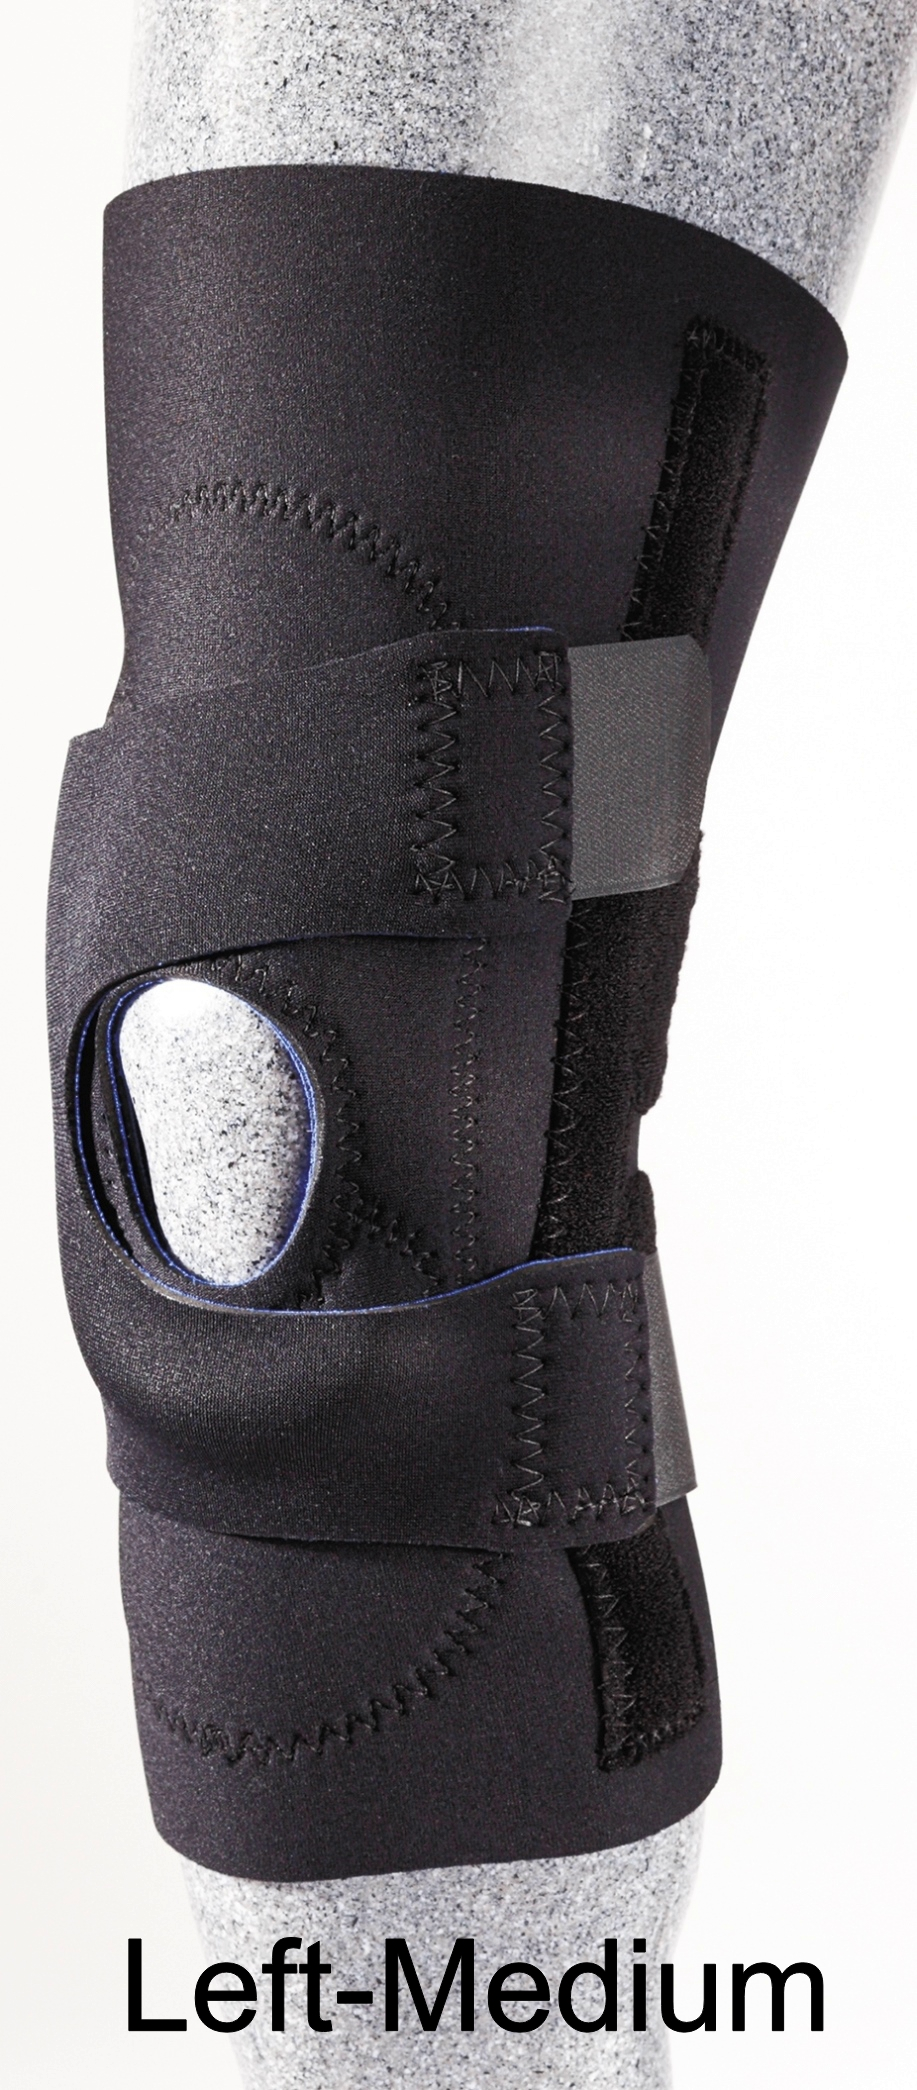 Patellar Stabilizer (J-Brace) with Pull Straps - Left - Medium - (14